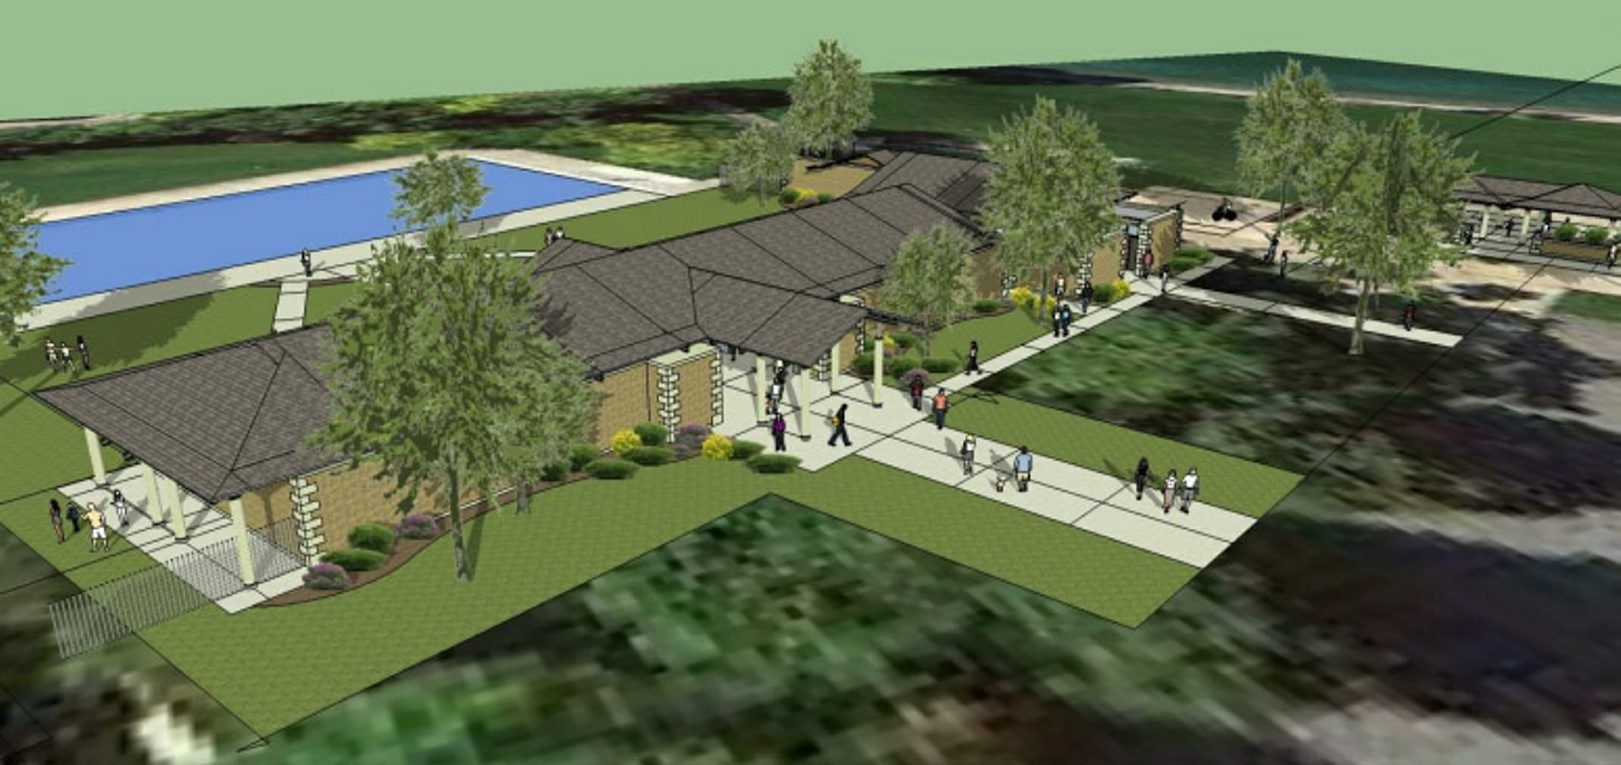 The proposed bathhouse in Fort Niagara State Park in Youngstown is seen in this rendering. The $2.5 million project will include restrooms, showers and a lifeguard station.